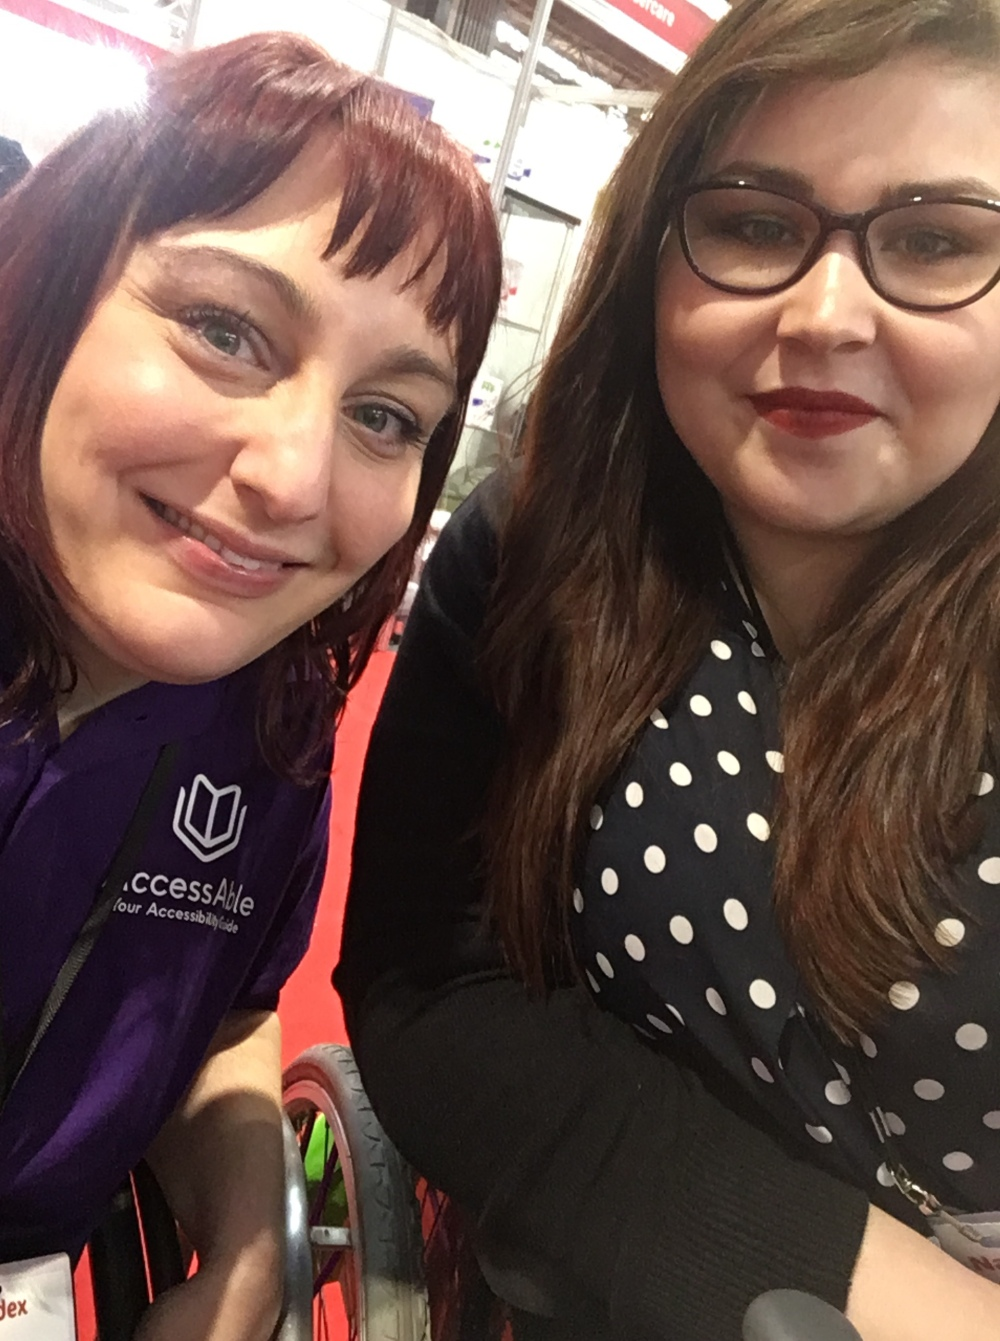 Two women sitting next to each other both leaning on the arms of their wheelchairs. On the left is Lucy with brown/red hair she is smiling at the camera and wearing a purple polo shirt which says AccessAble on it. On the right sits Holly she has long brown hair, slightly rounded purple glasses, she is wearing red lipstick. She is wearing a dark blue blouse with white polka dots and a black cardigan.